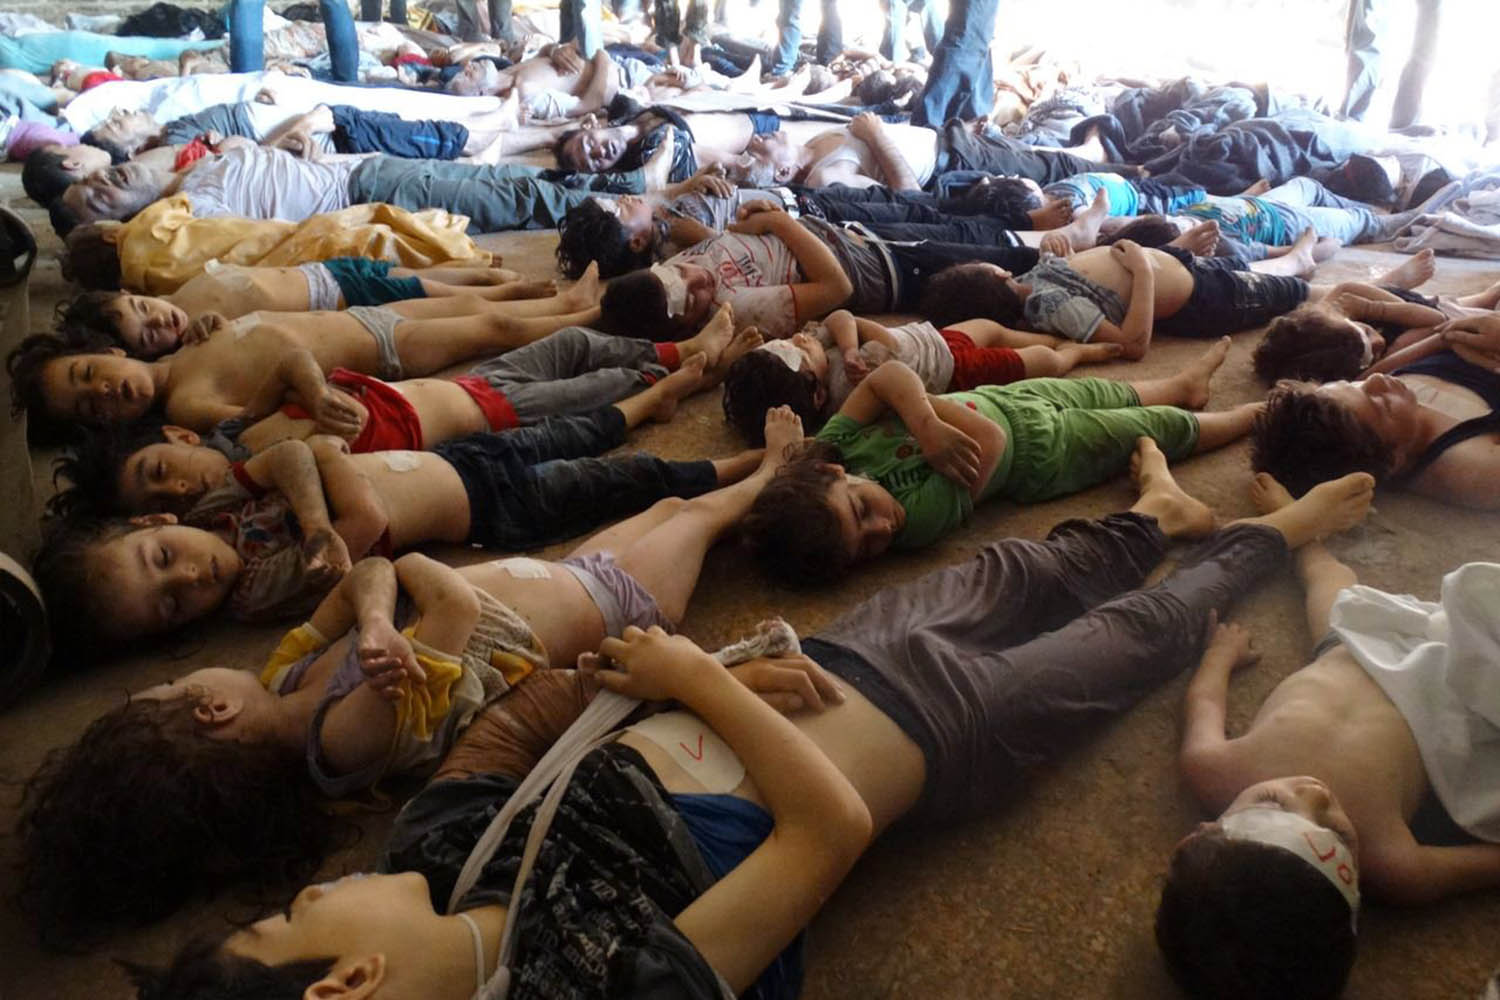 Aug. 21, 2013. This photo released by the Syrian opposition's Shaam News Network shows bodies of children and adults on the ground as Syrian rebels claim they were killed in a toxic gas attack by pro-government forces in eastern Ghouta, on the outskirts of Damascus.